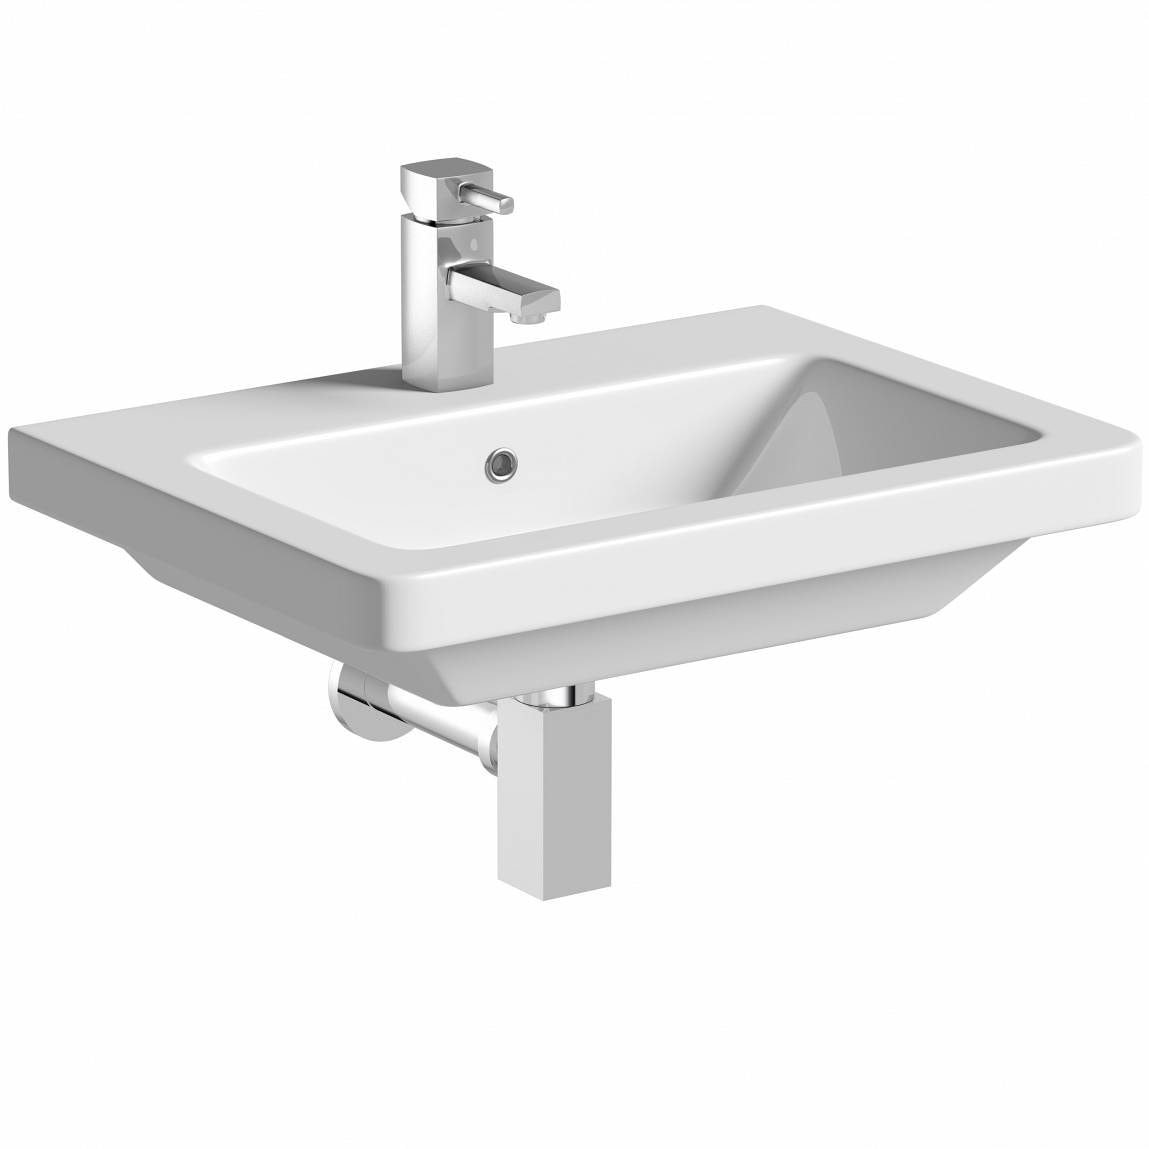 Mode Cooper 1 tap hole wall hung basin 600mm with waste